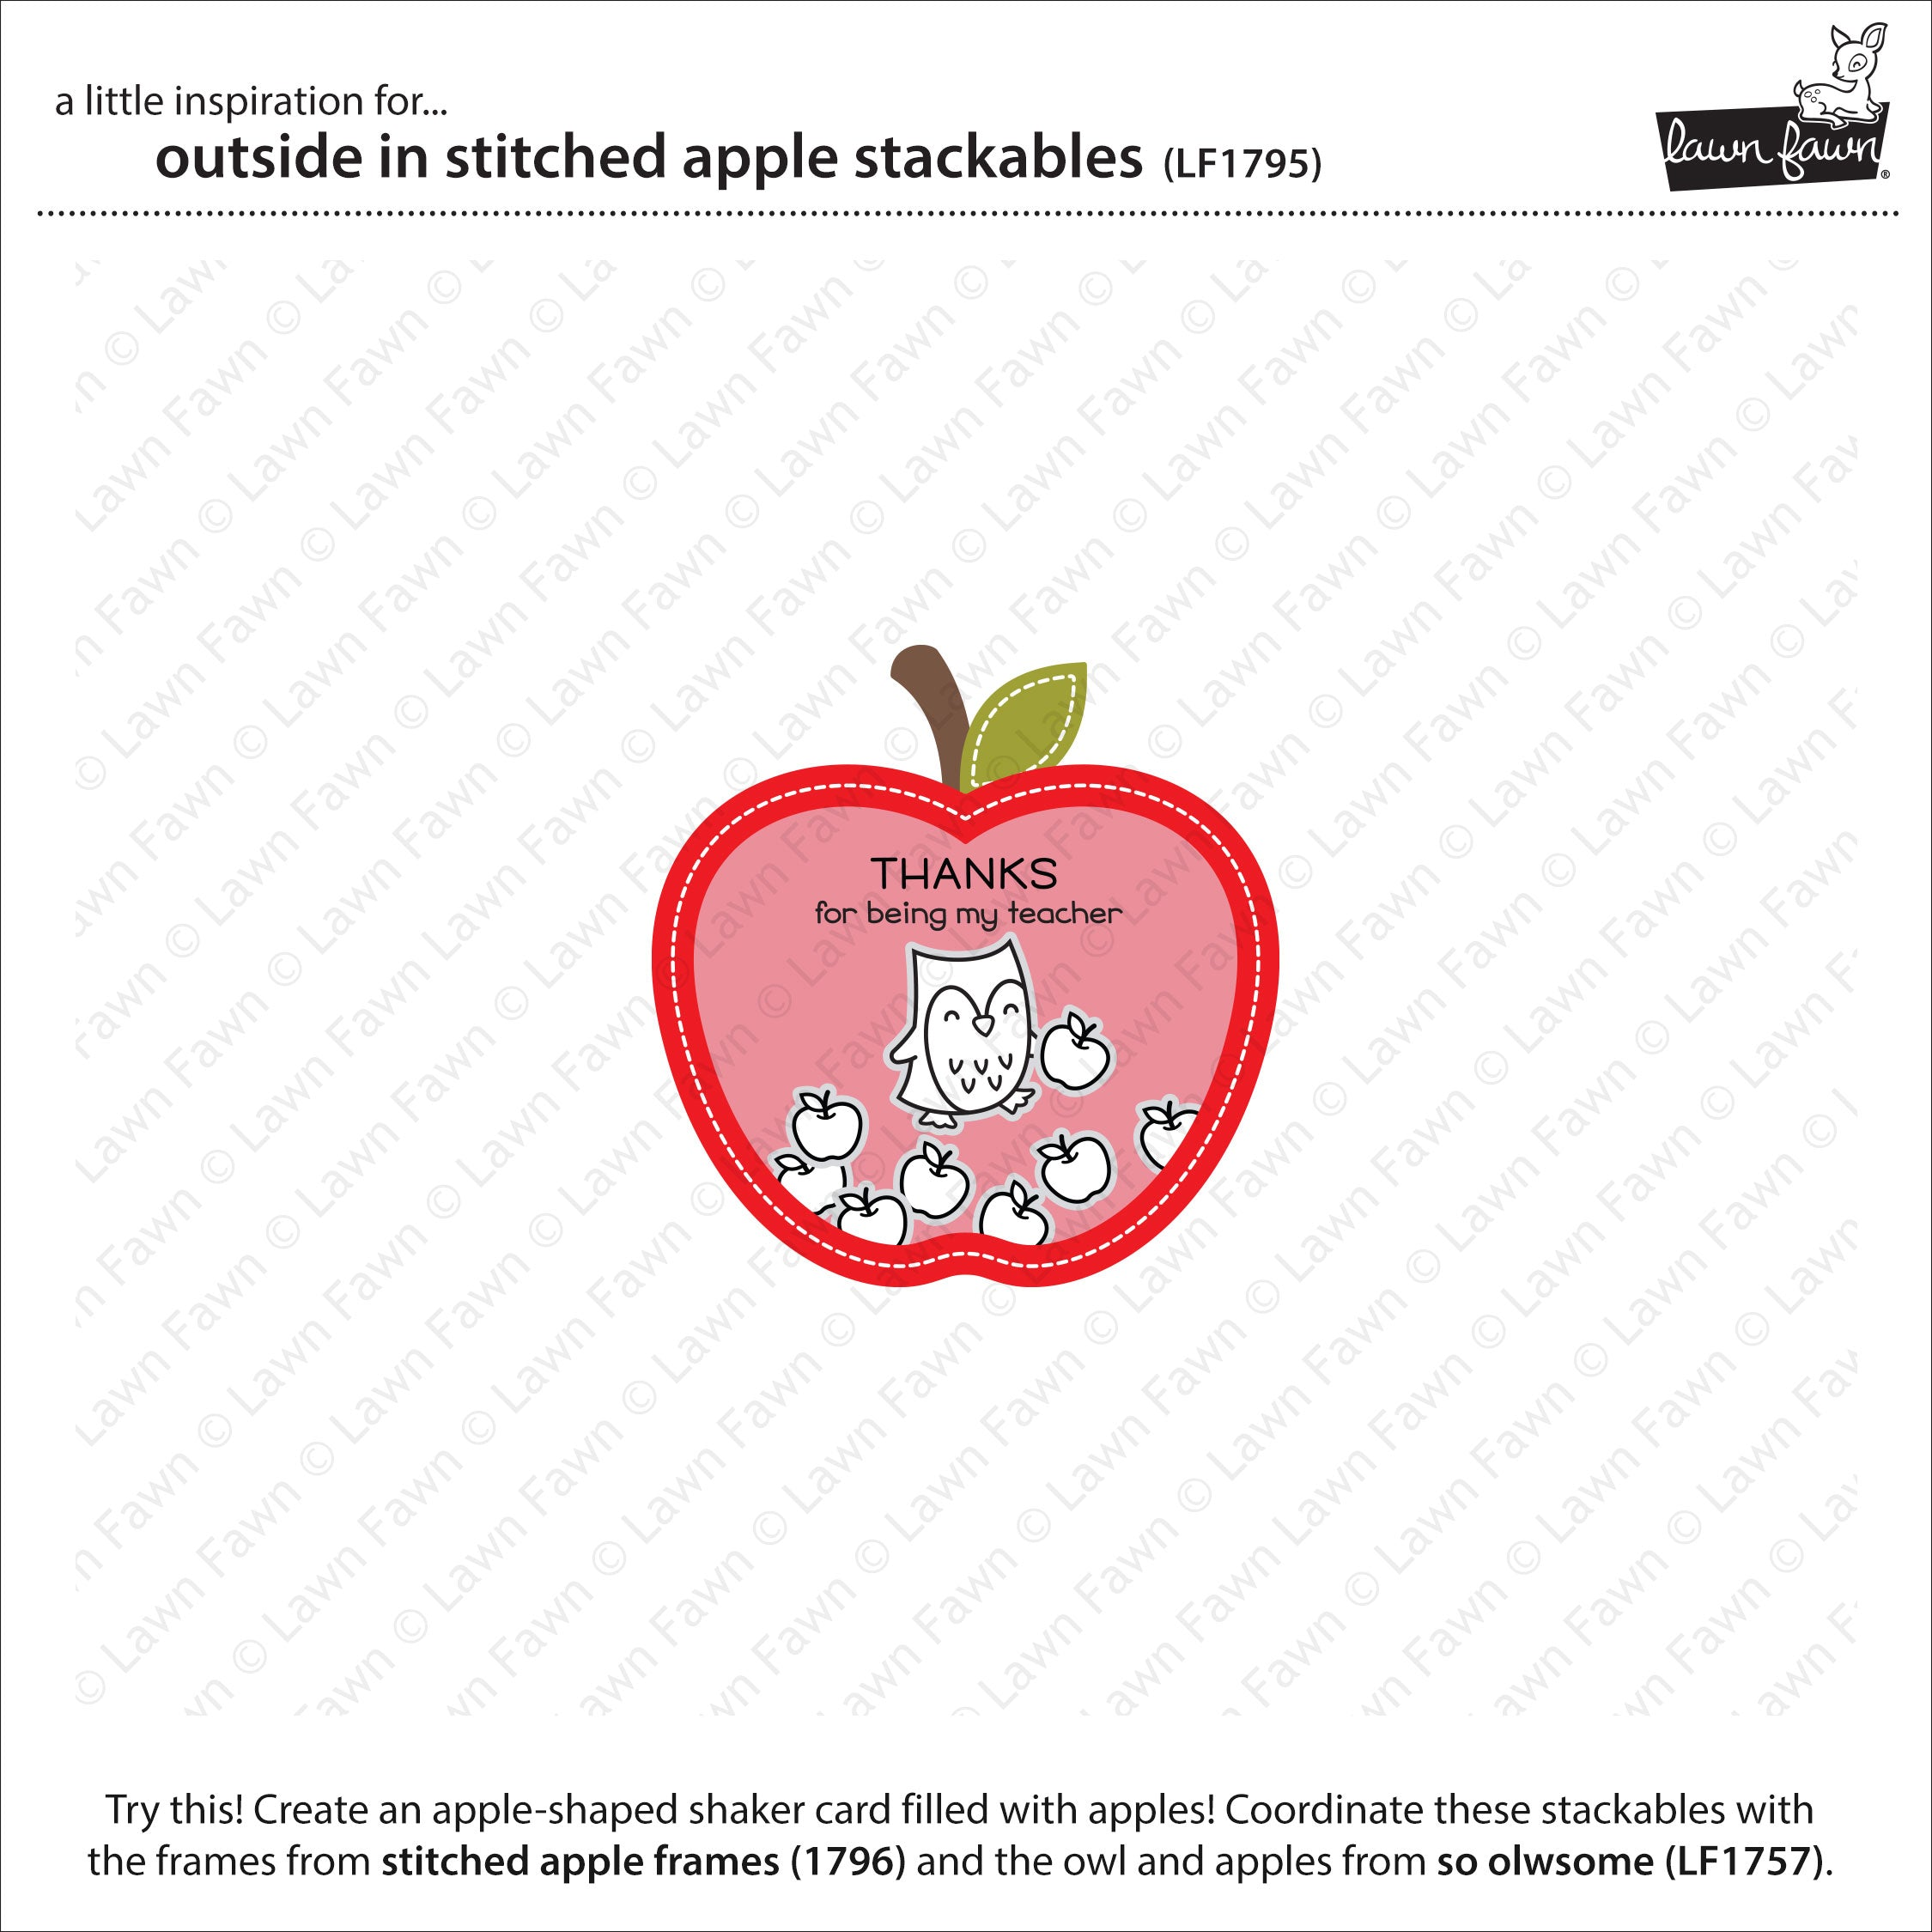 outside in stitched apple stackables